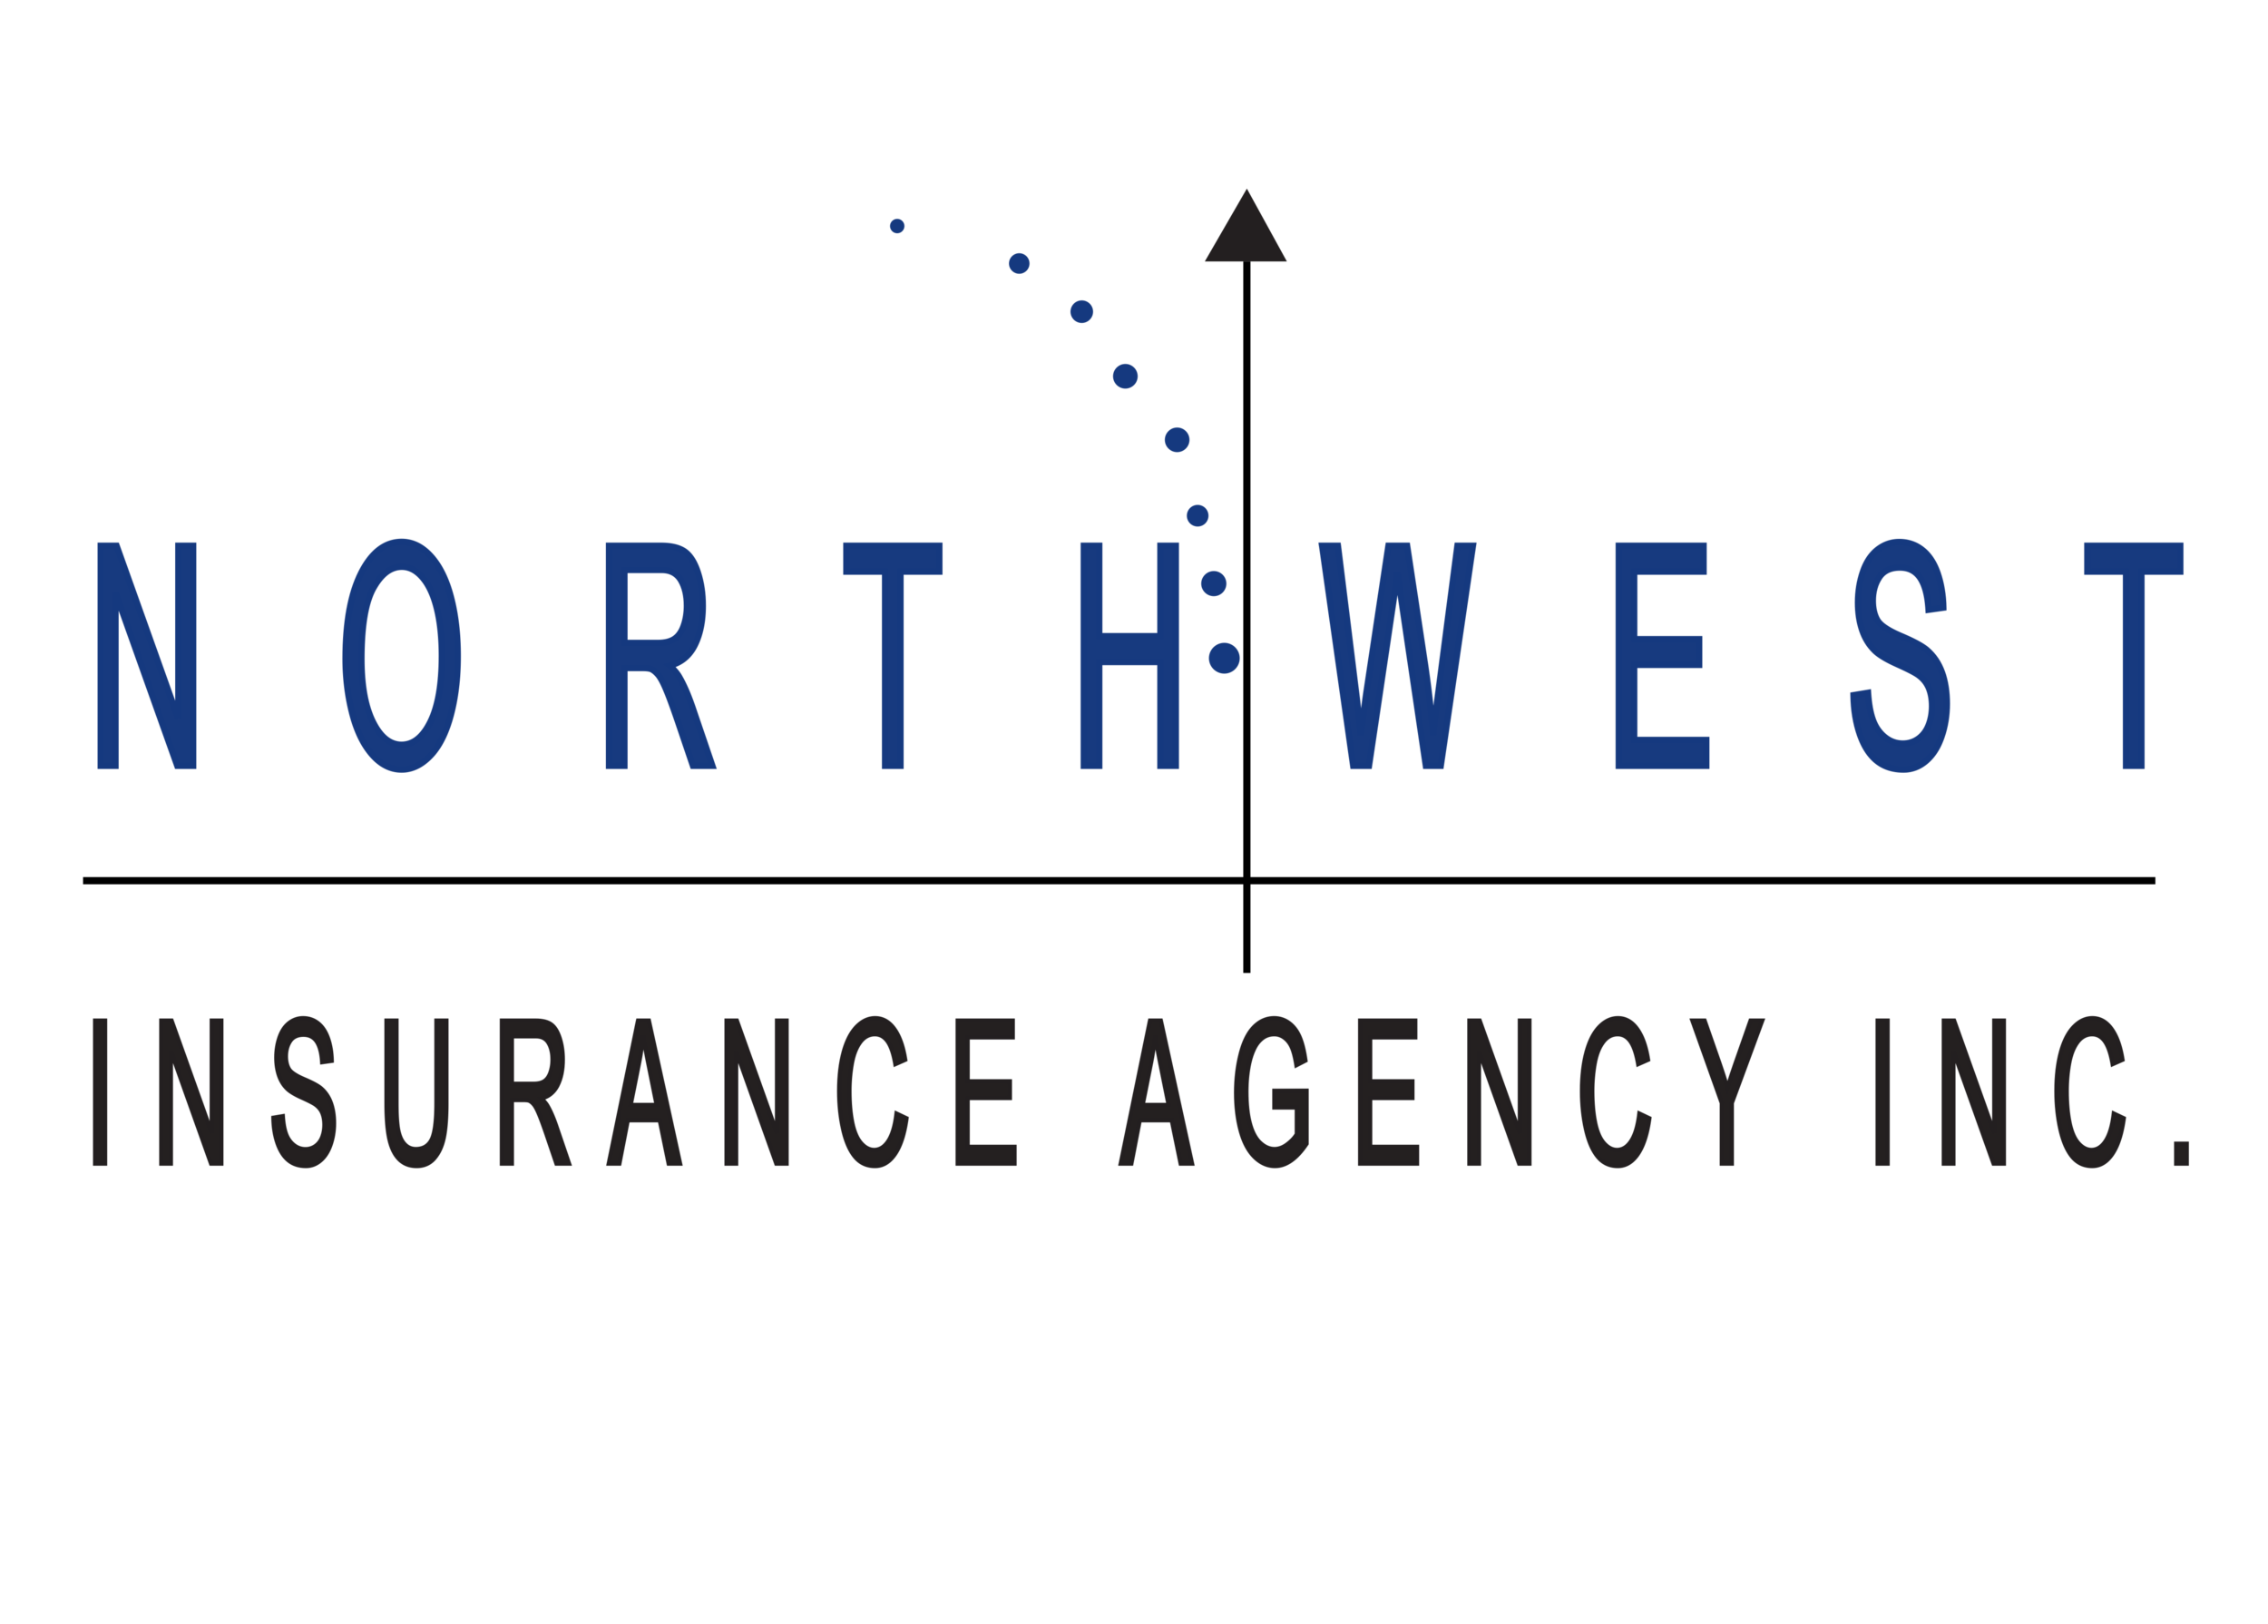 NorthWestlogo.png